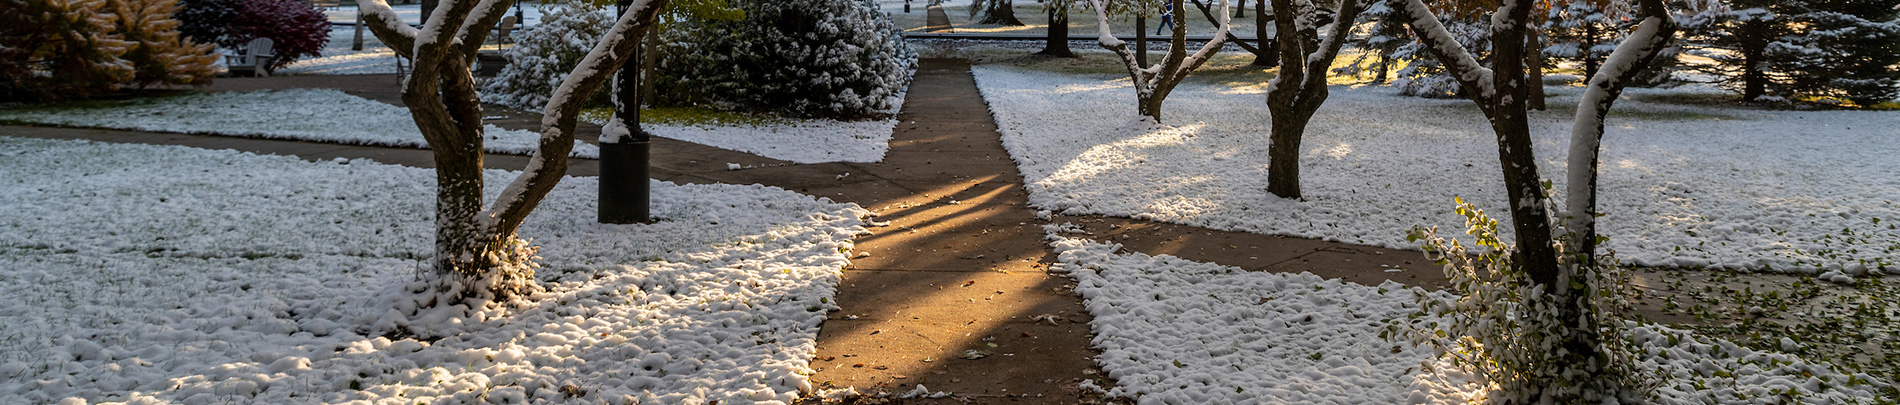 Snow covers the grass as the walkways and foliage on campus are featured in this image.